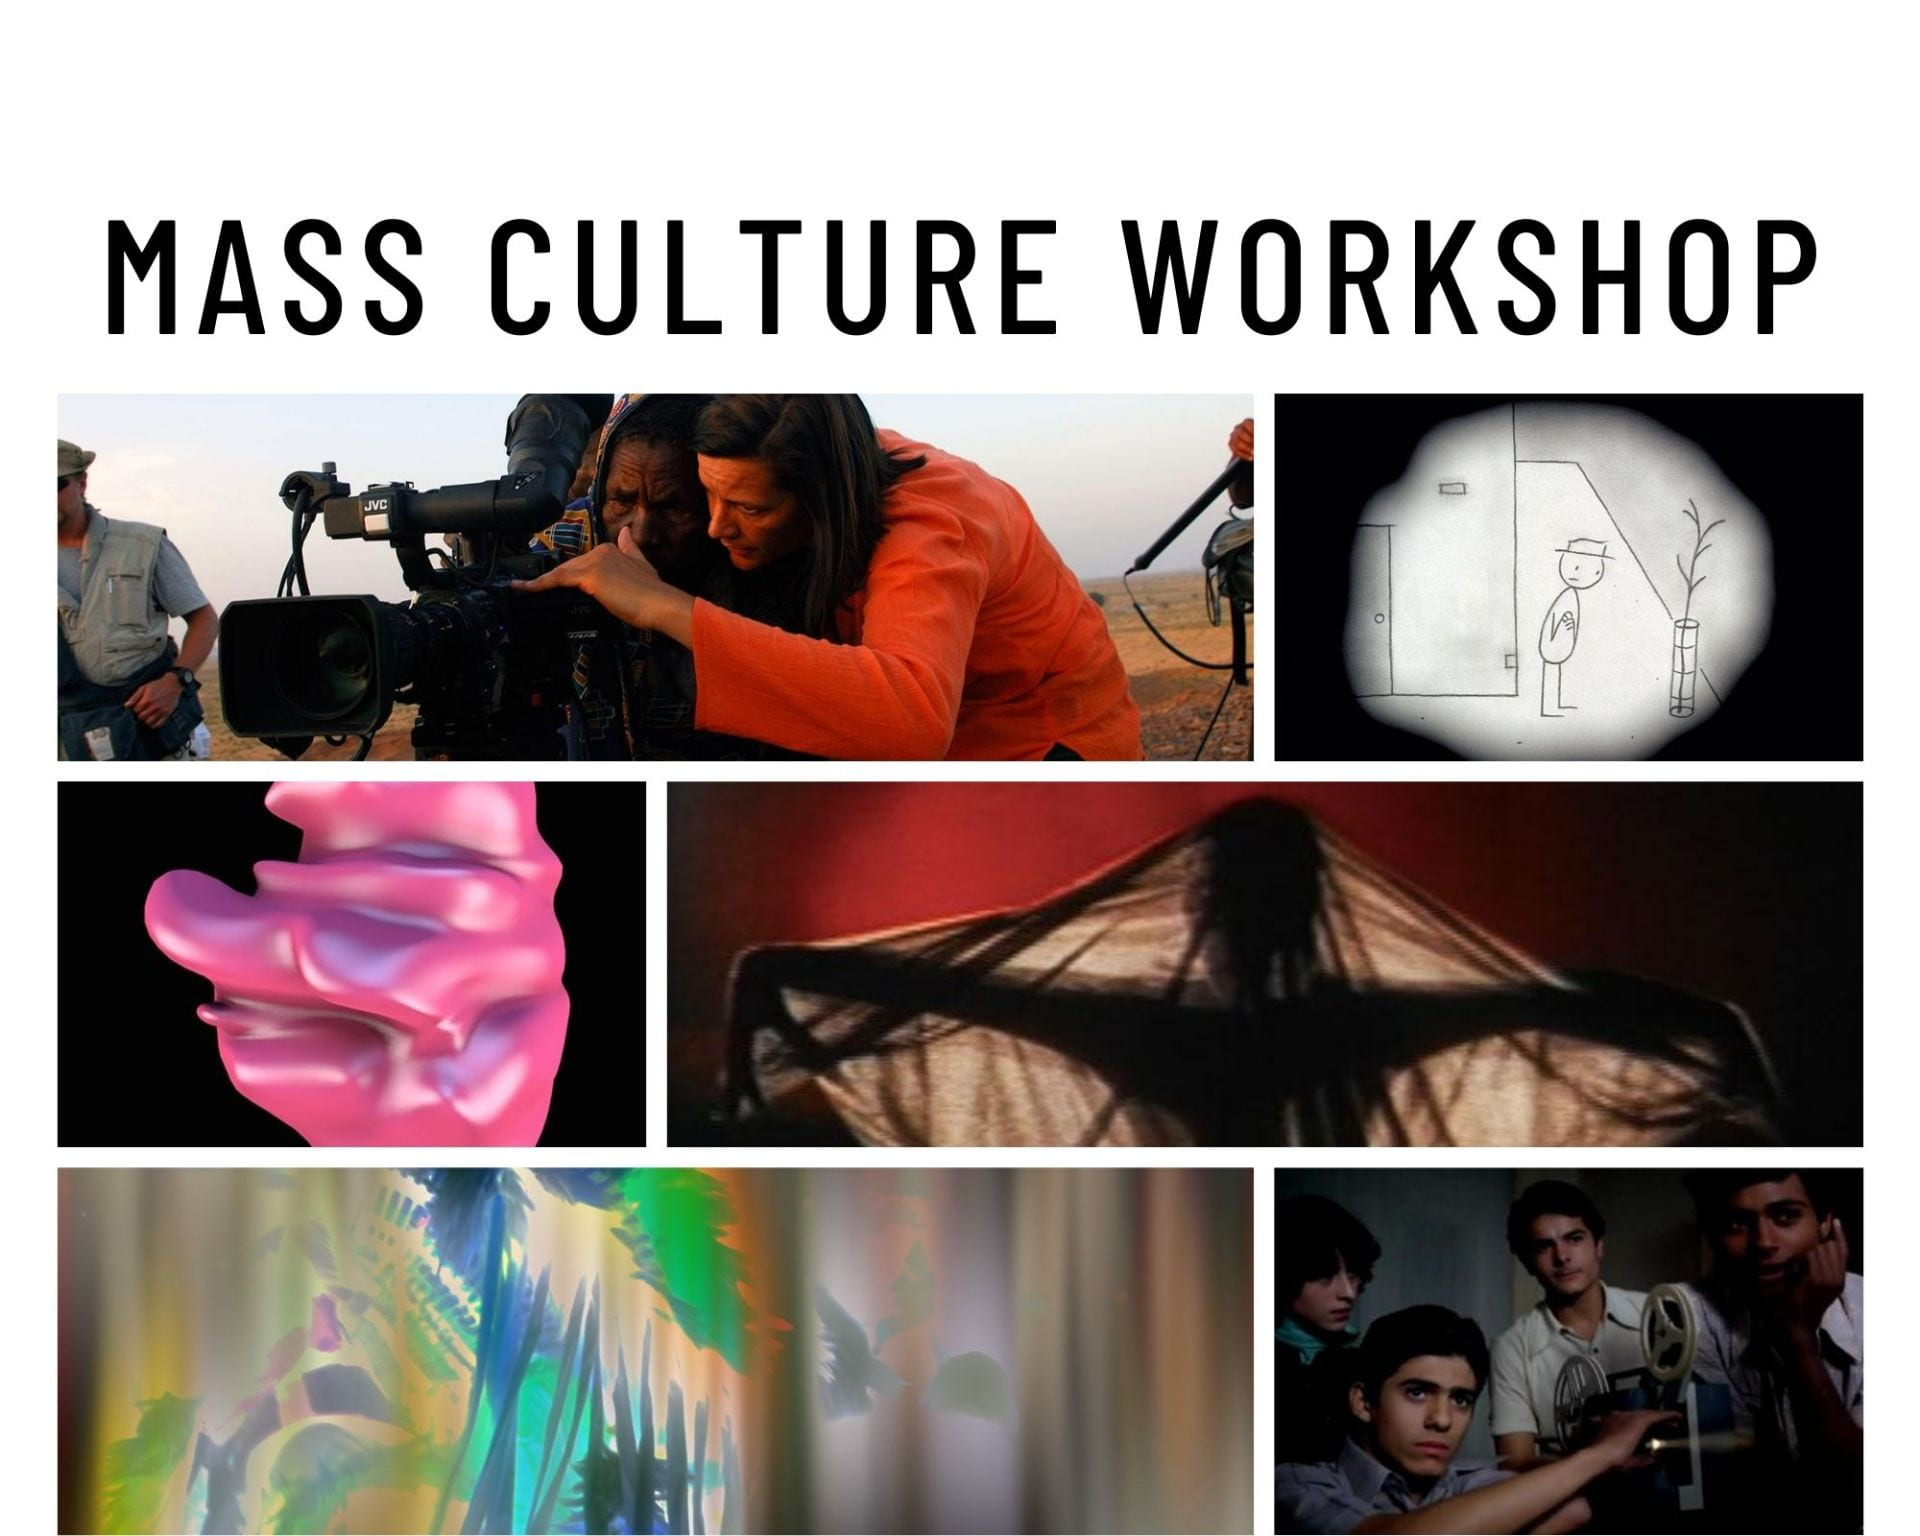 Mass Culture Workshop